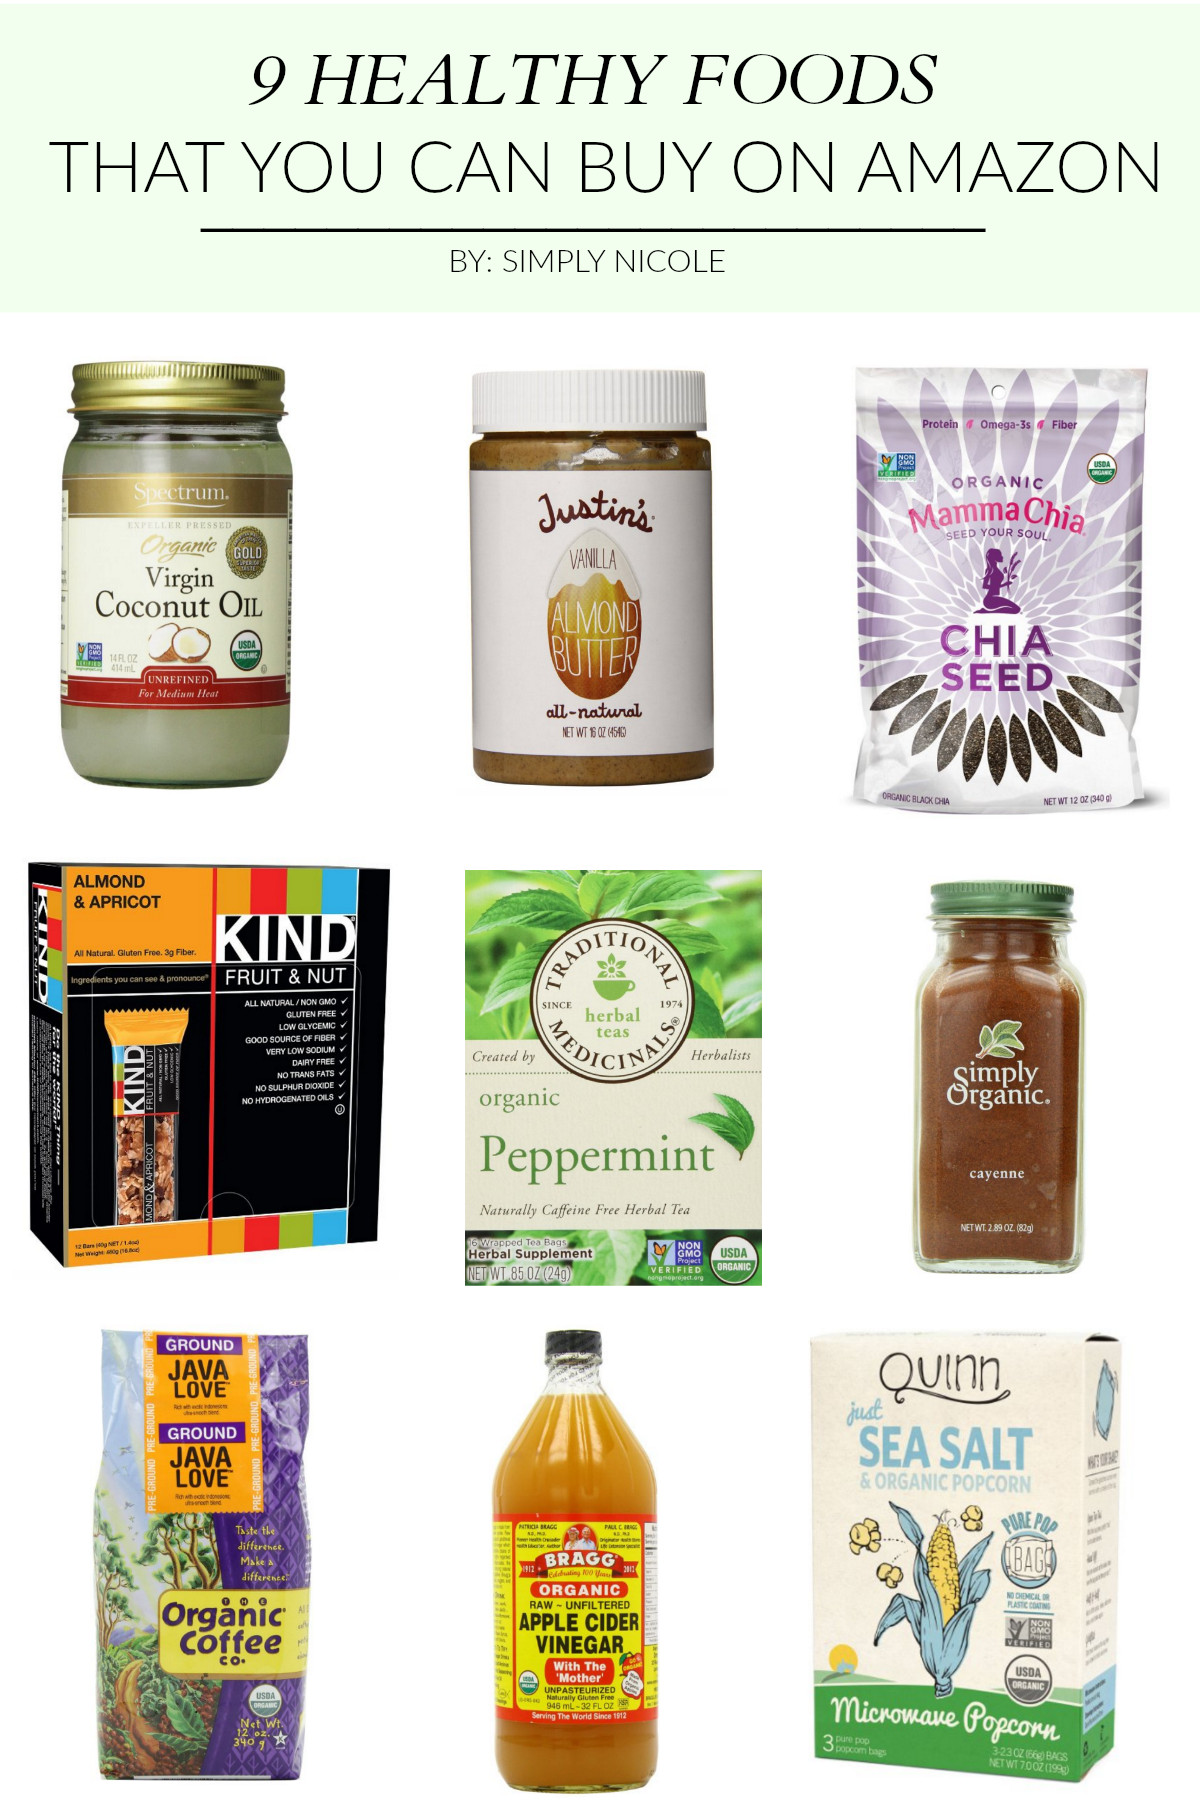 Healthy Snacks To Buy  9 Healthy Foods that You Can Buy on Amazon Simply Nicole